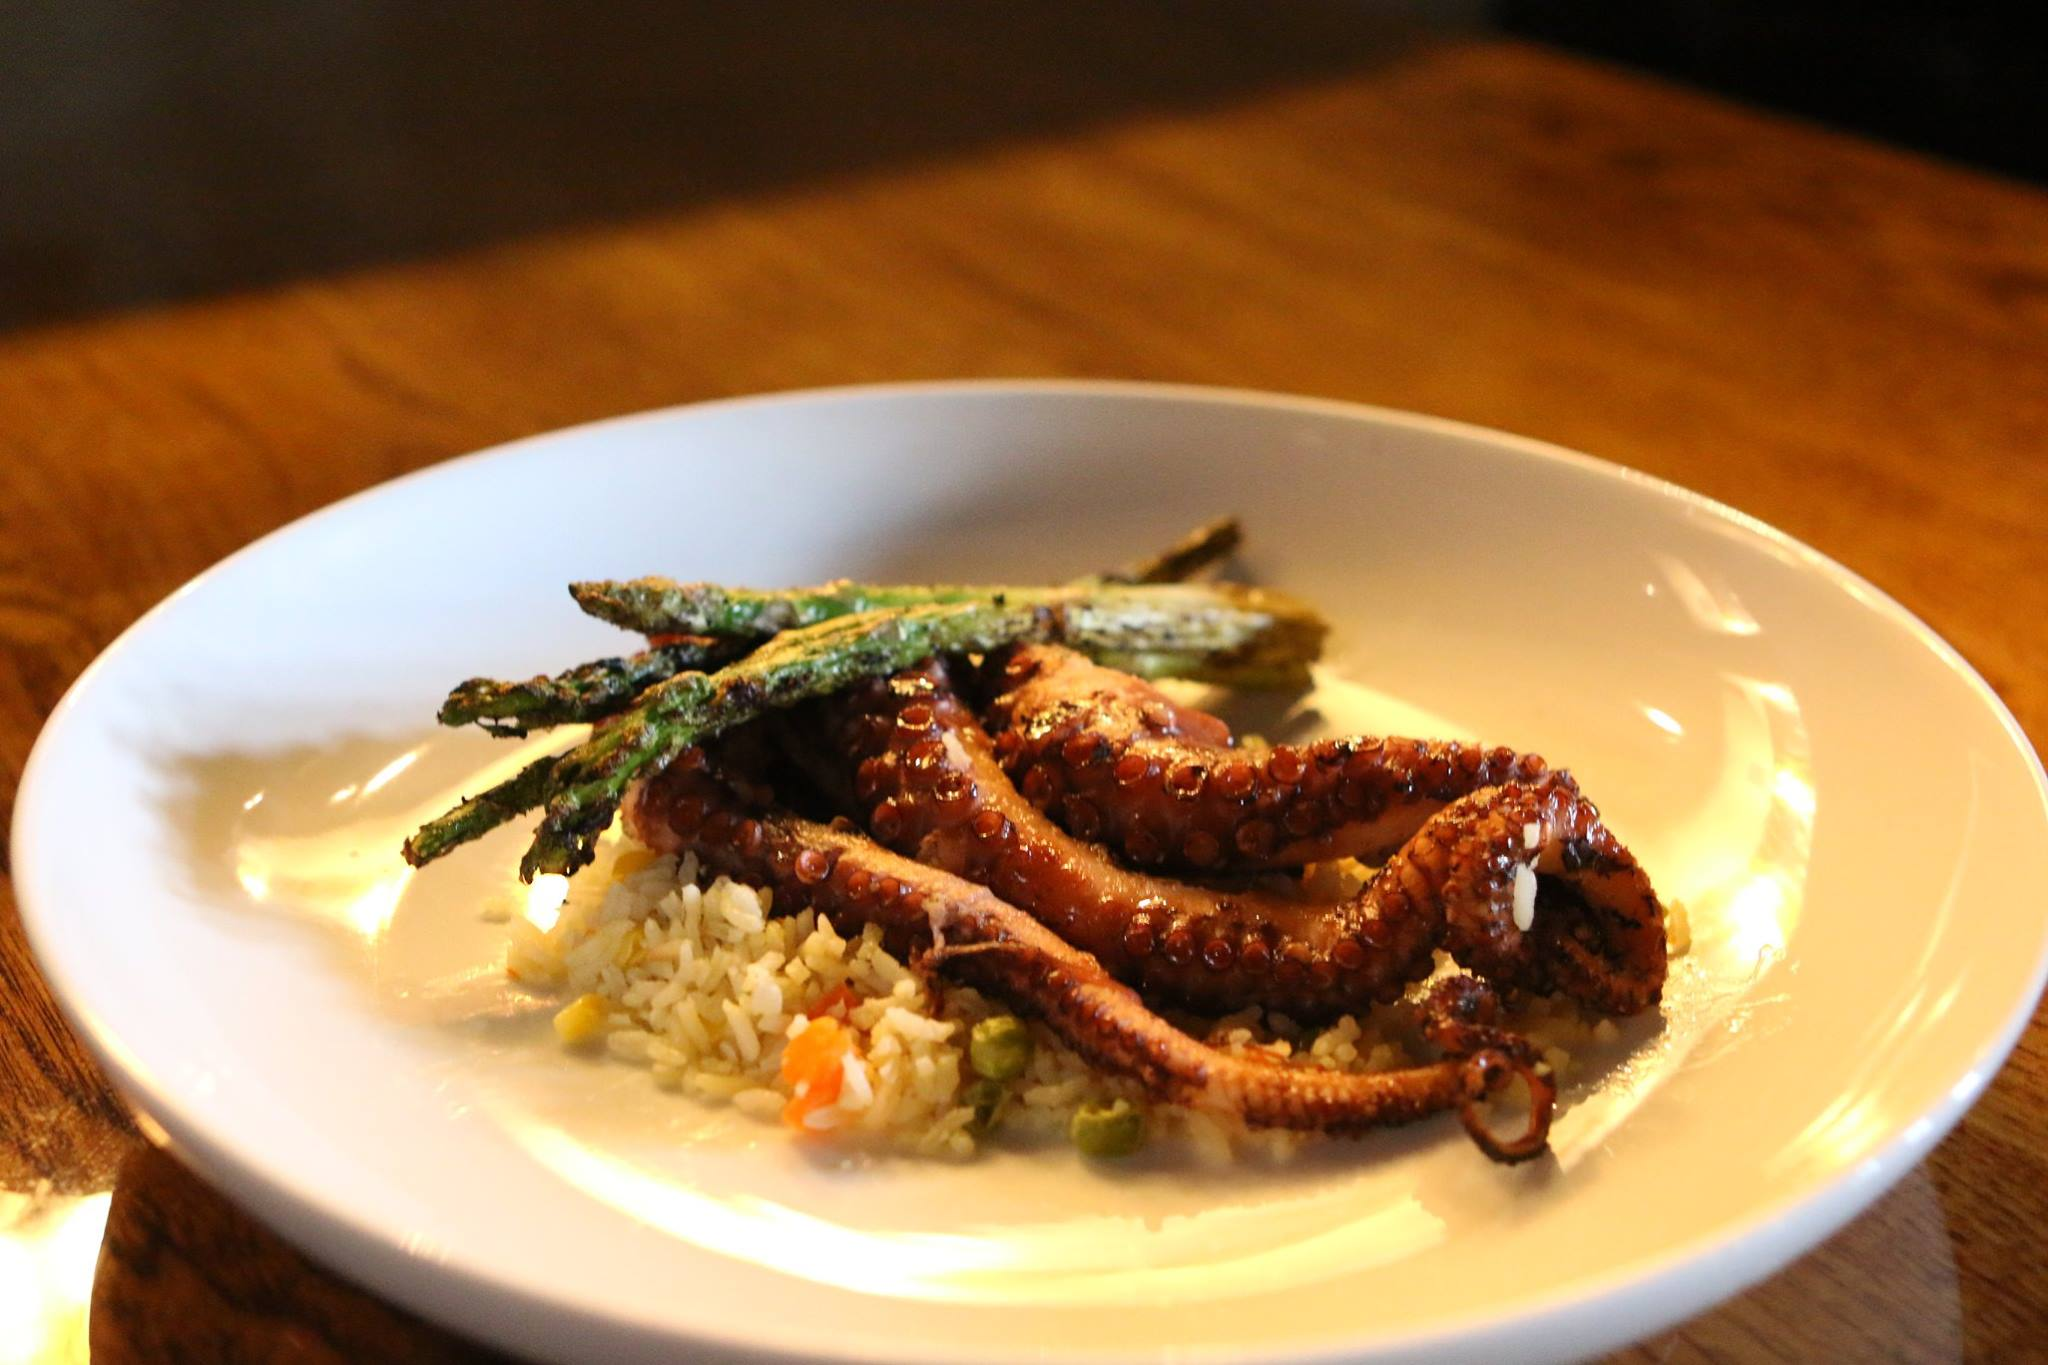 Grilled octopus with asparagus and vegetable rice